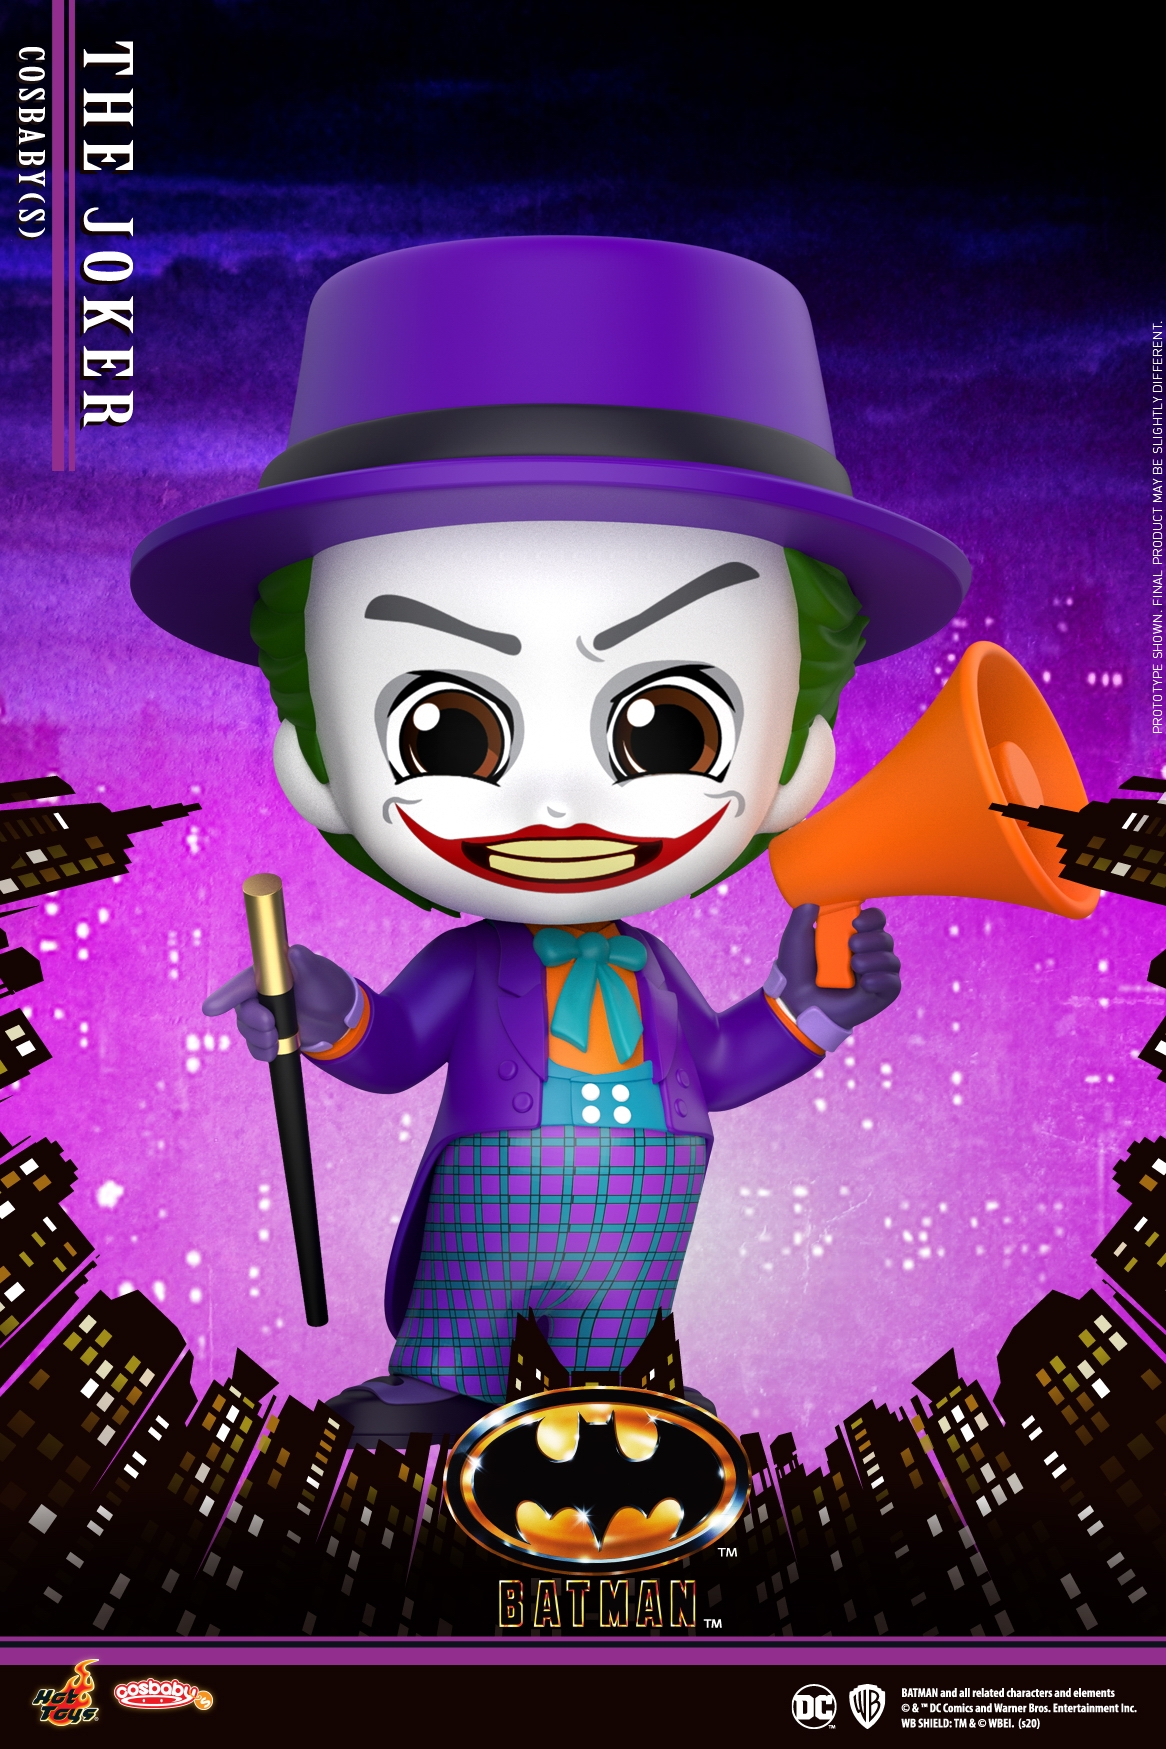 Hot Toys - Batman (1989) - The Joker Cosbaby_PR1.jpg